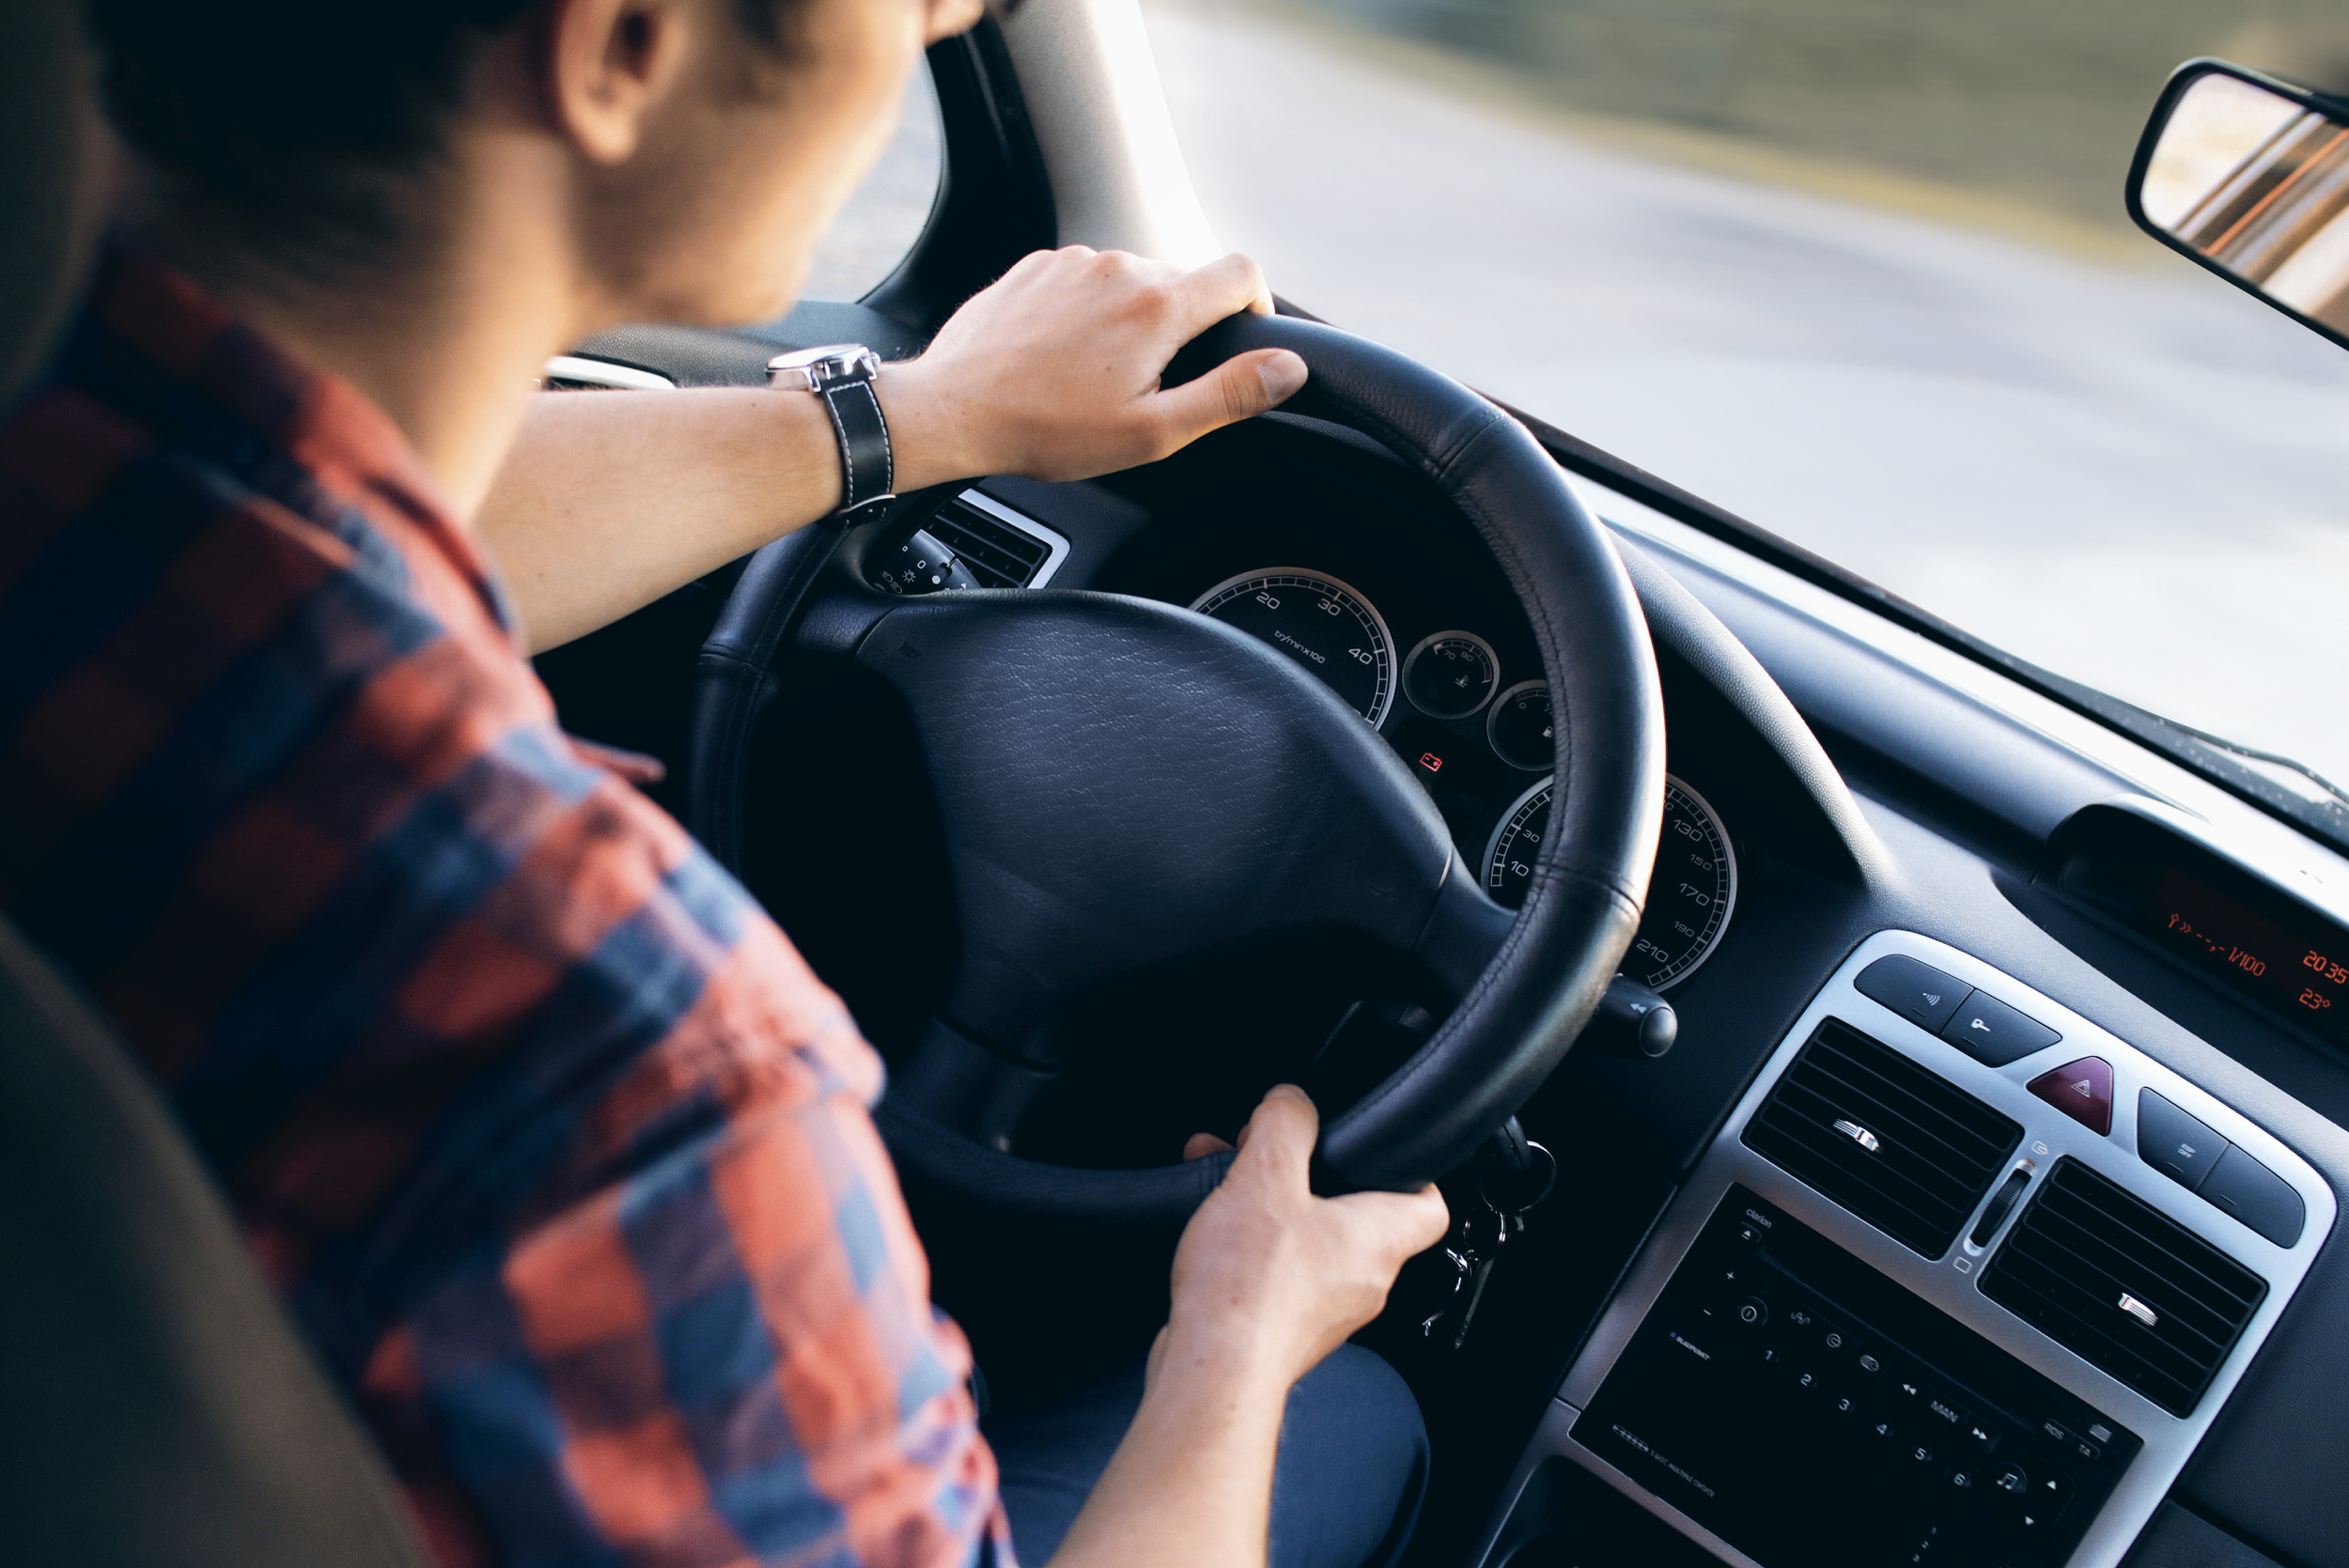 Auto Insurance - Your vehicle is a central part of your lifestyle. It is your connection between all of the important places you go every day.